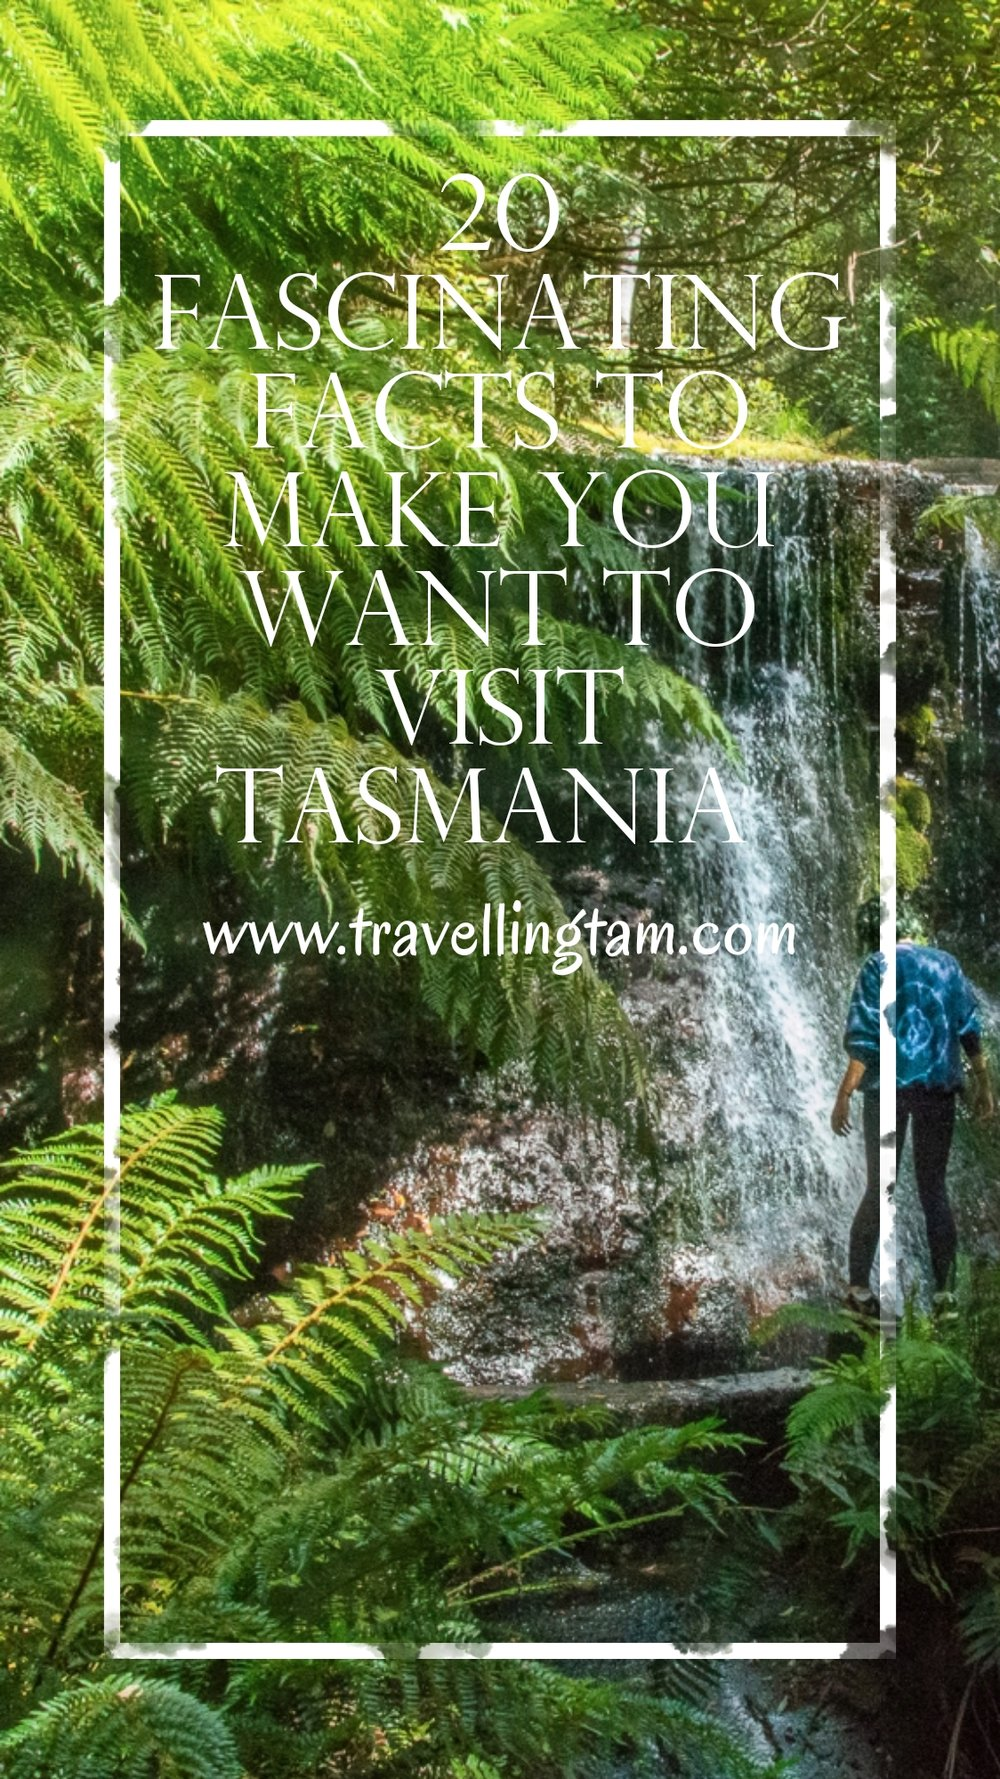 20 Fascinating Facts to Make You Want To Visit Tasmania!